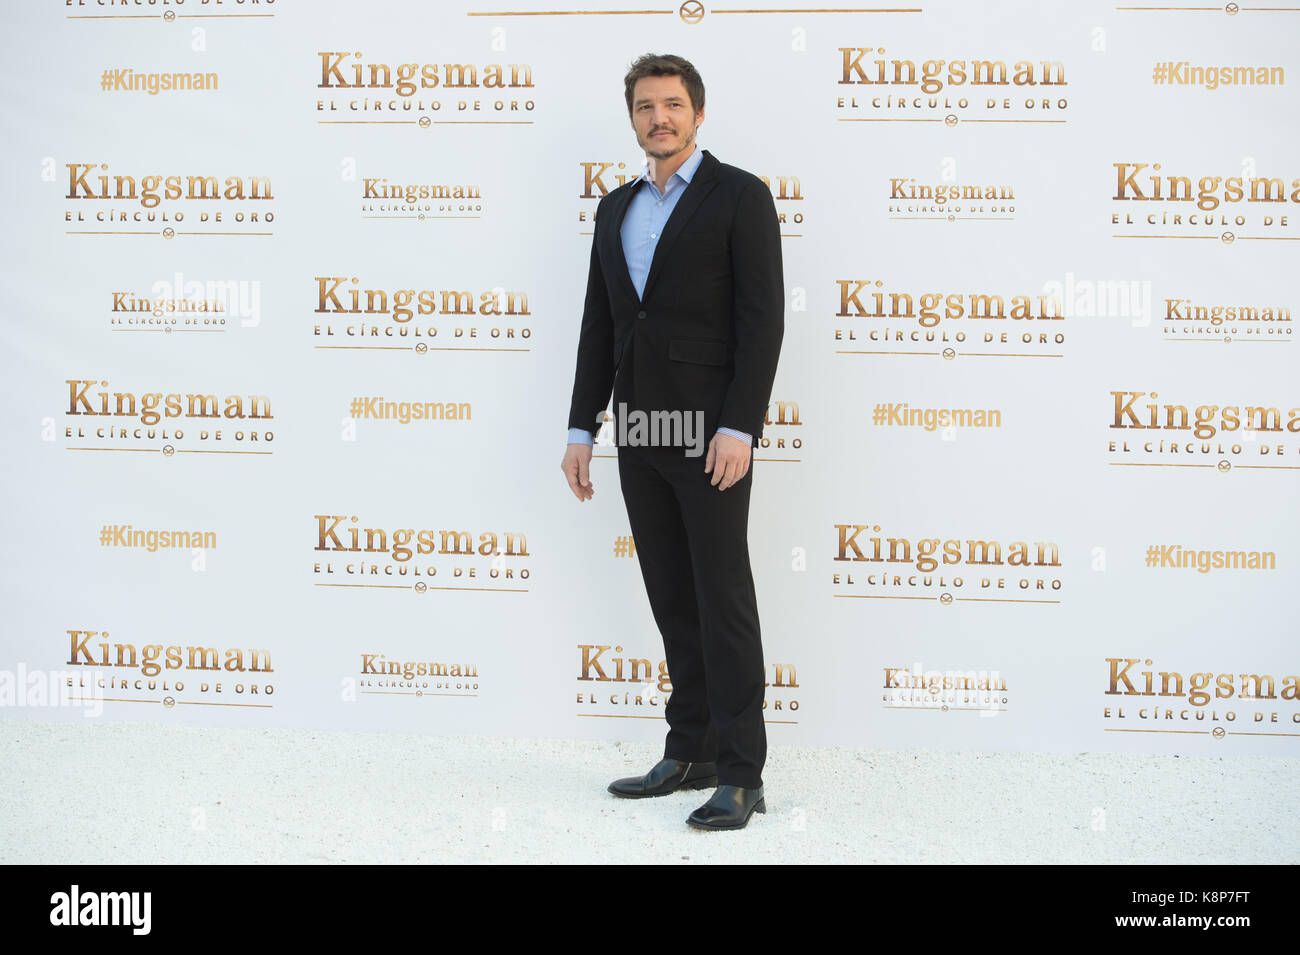 Madrid, Spain. 20th Sep, 2017. Actor Pedro Pascal during photocall of the movie 'Kingsman: The Golden Circle' - Stock Image